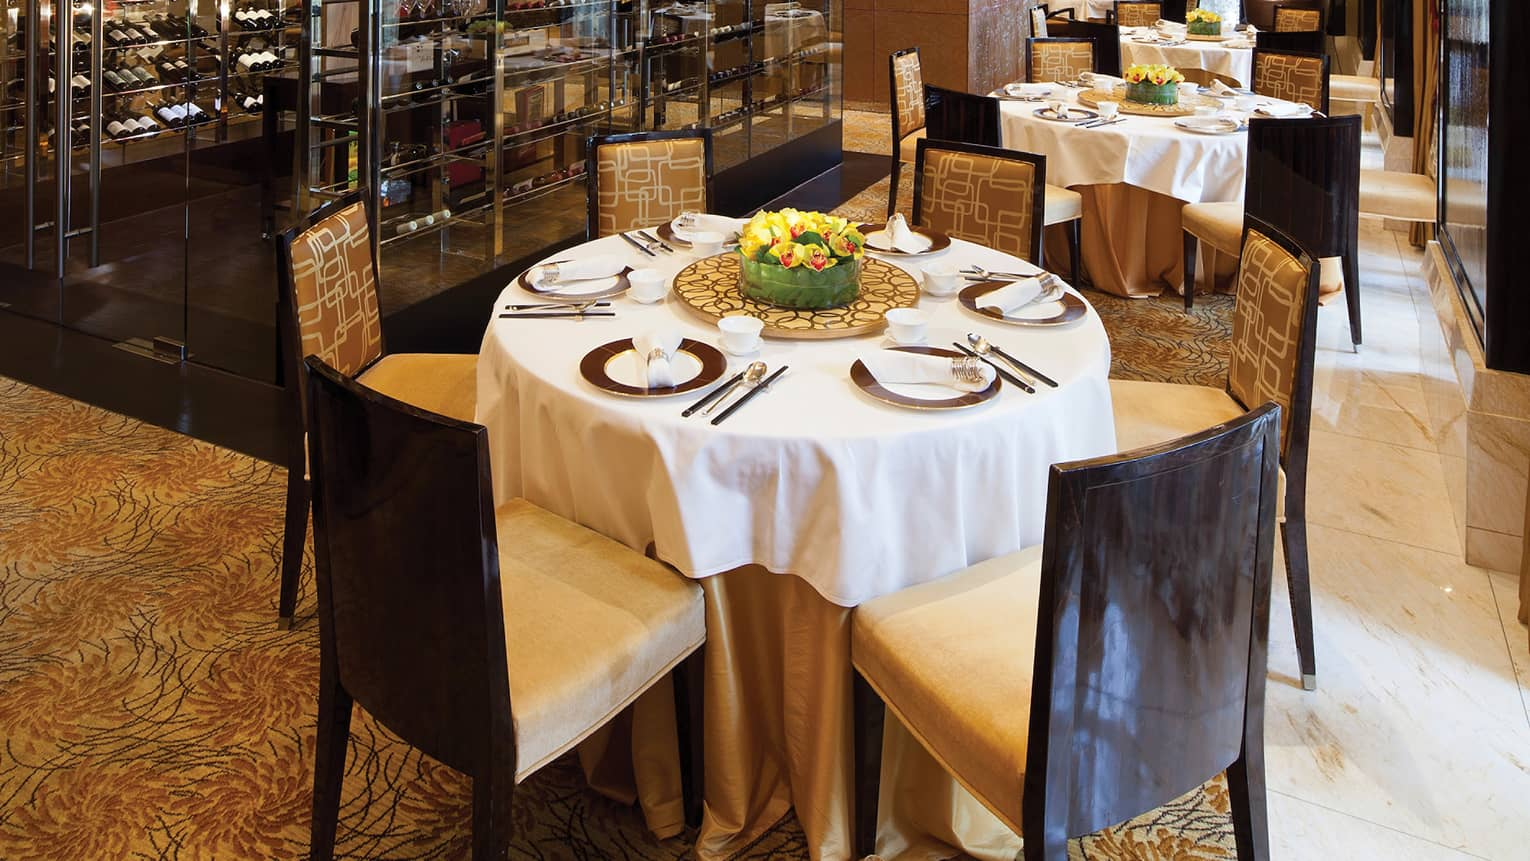 Round dining tables with white cloths, chairs in front of large wine cellar racks